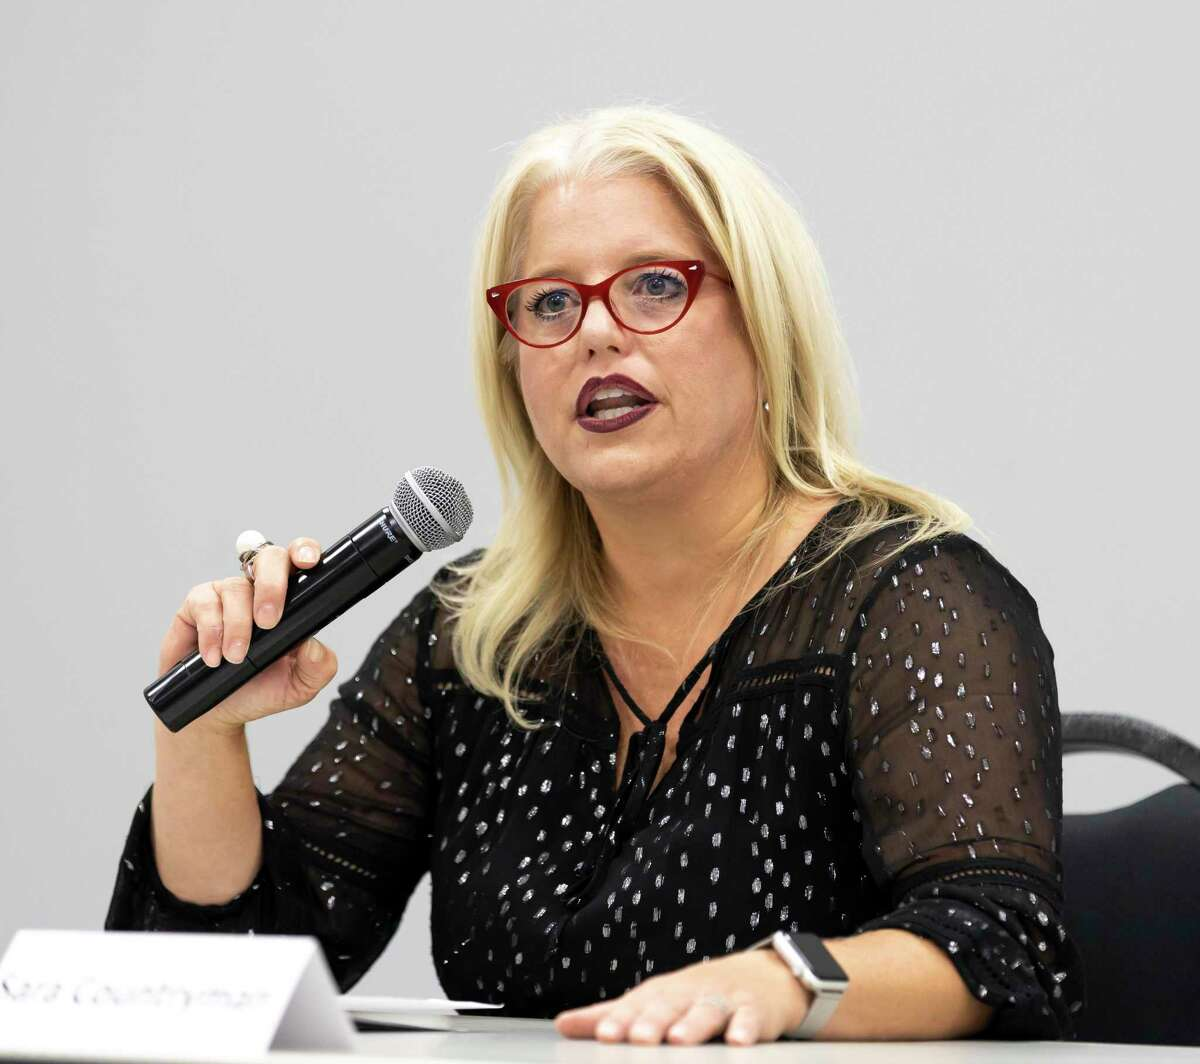 Mayor Sara Countryman speaks during a community forum for the upcoming election at the Lone Star Community Center in Montgomery, Tuesday, Sept, 30, 2020. Countryman is running against Bill Clevenger in the upcoming Nov. 3 election.